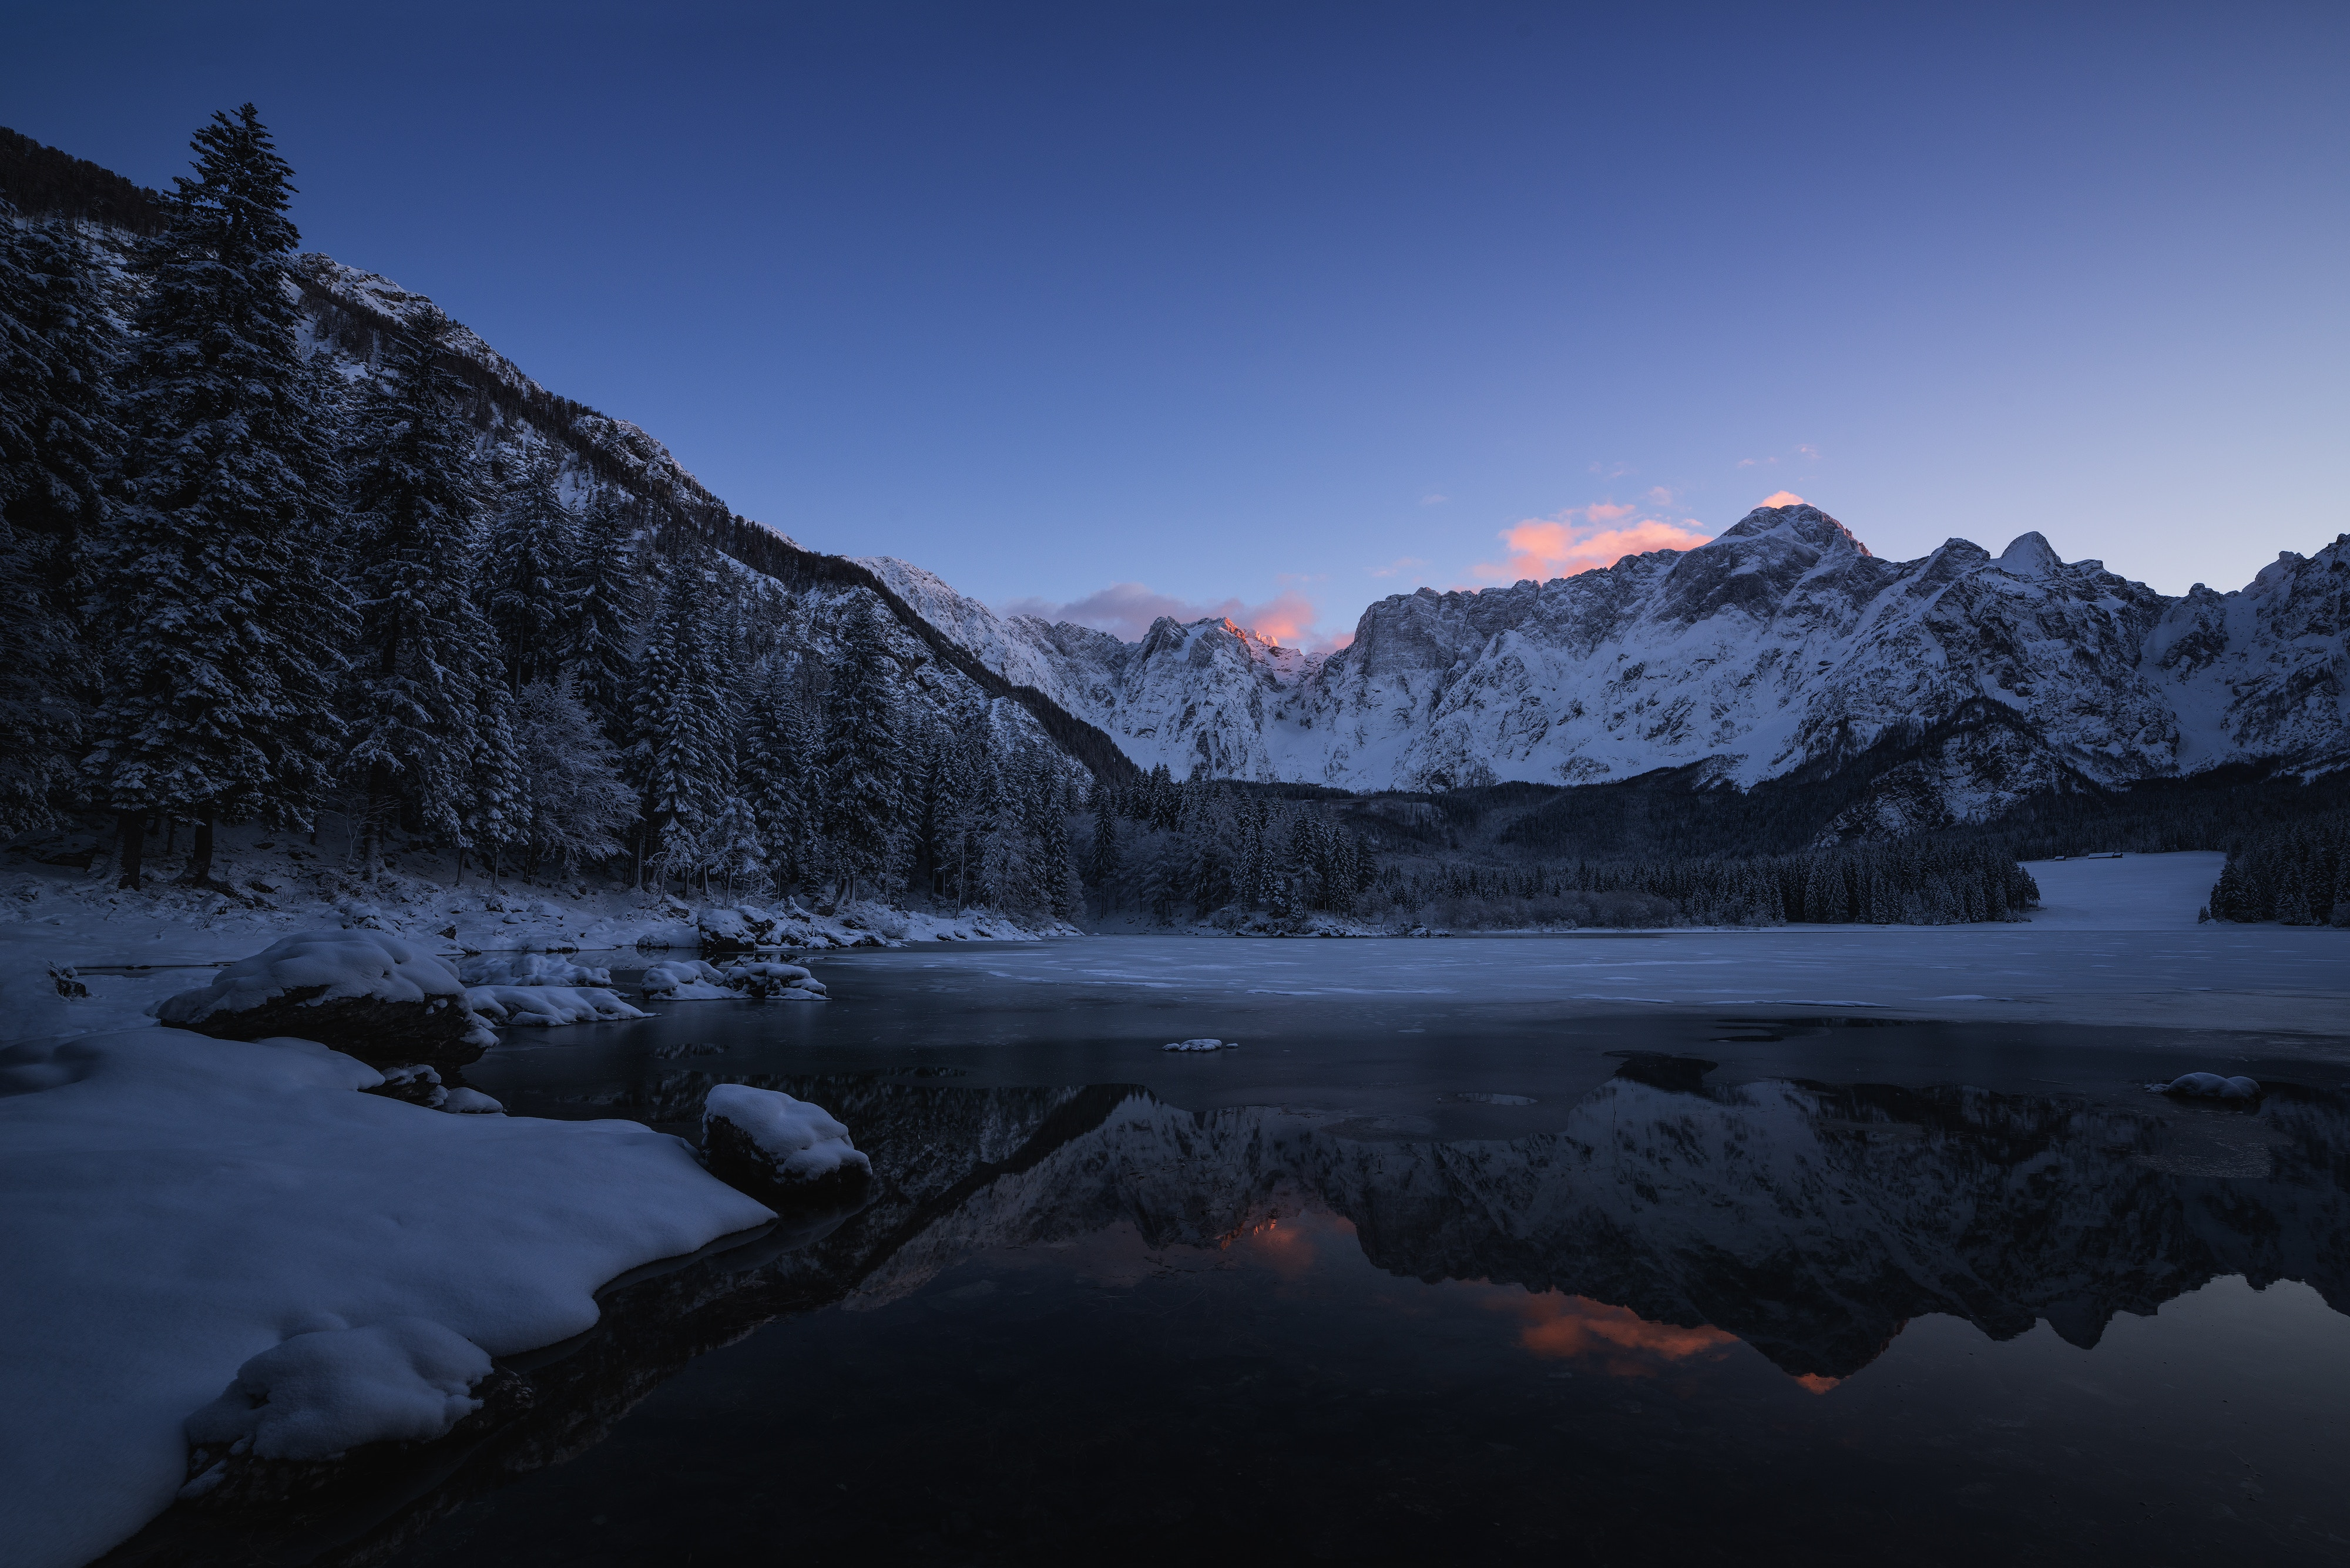 120833 download wallpaper Nature, Snow, Lake, Water, Mountains screensavers and pictures for free